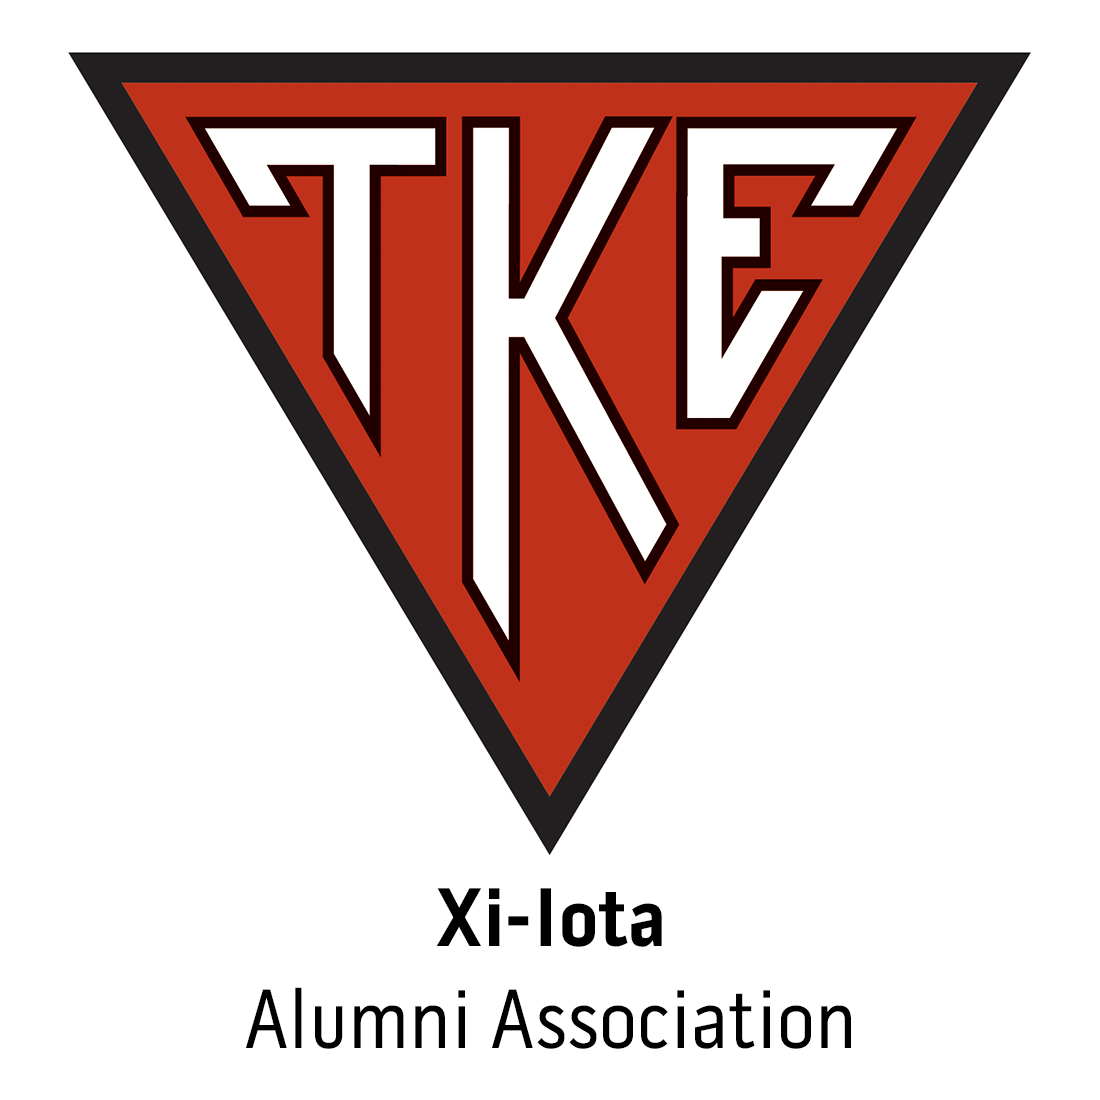 Xi-Iota Alumni Association at University of Central Florida